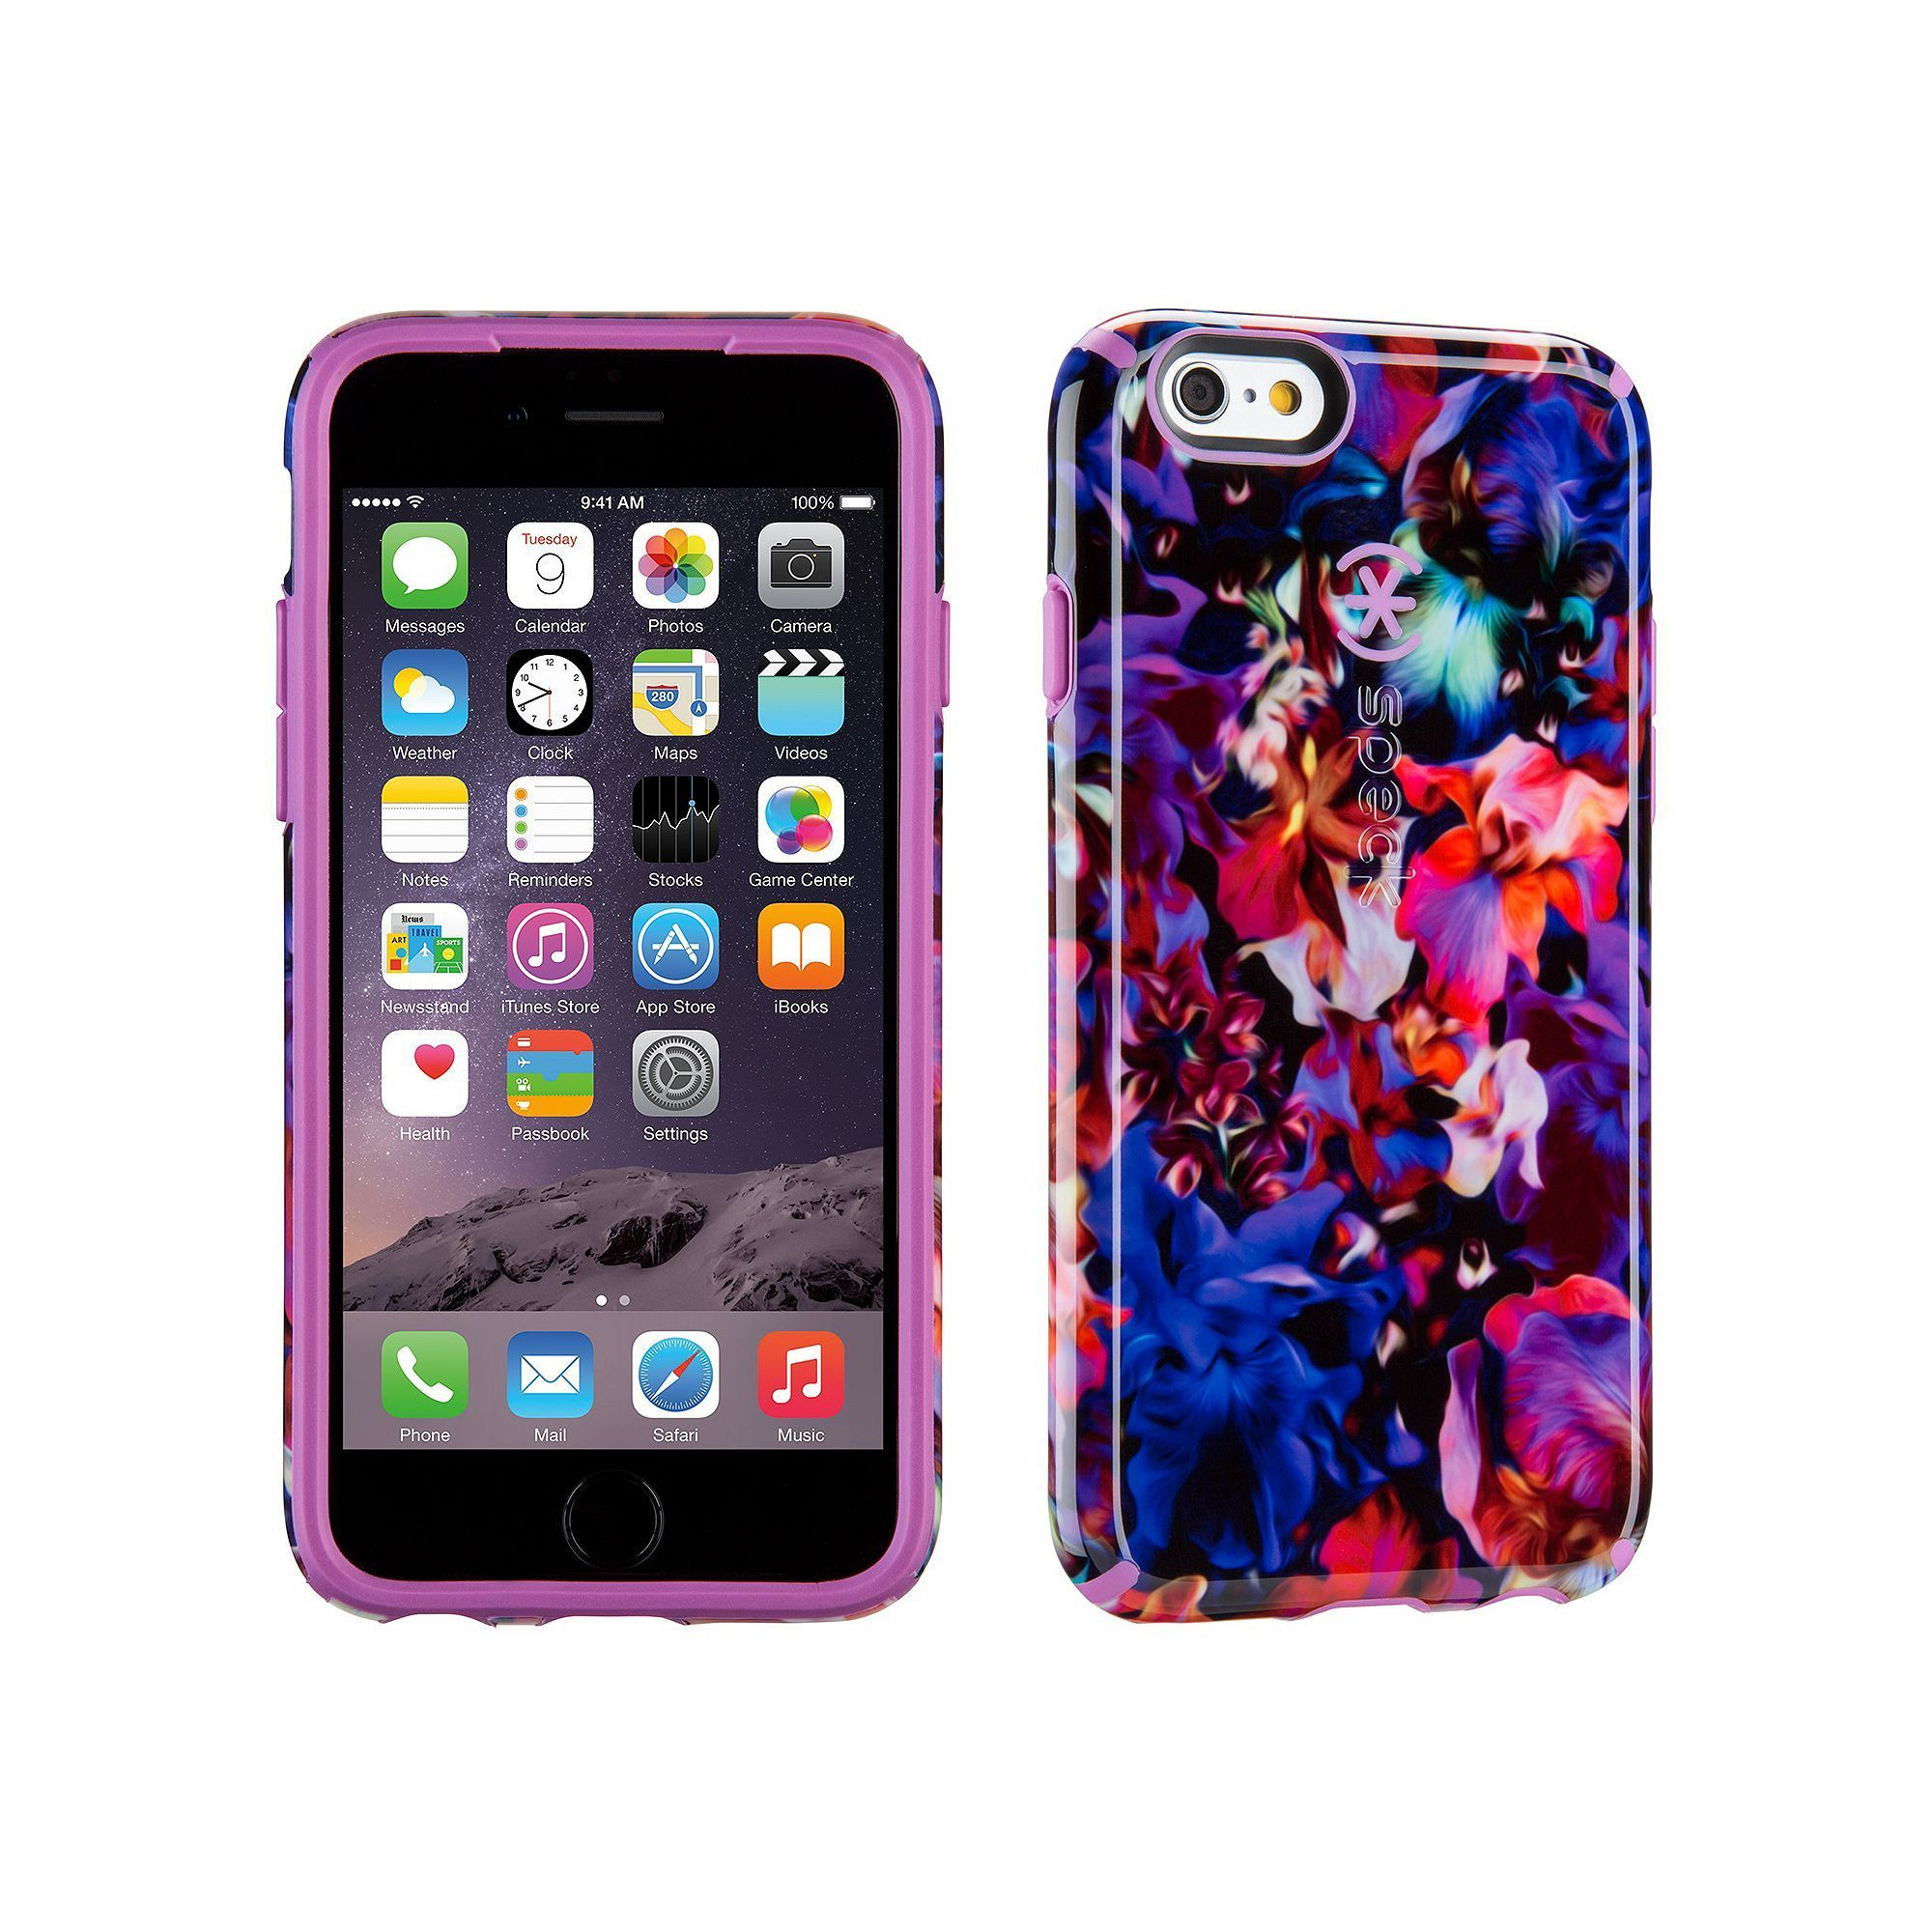 Speck CandyShell Inked iPhone 6 Case Iphone 6 cases